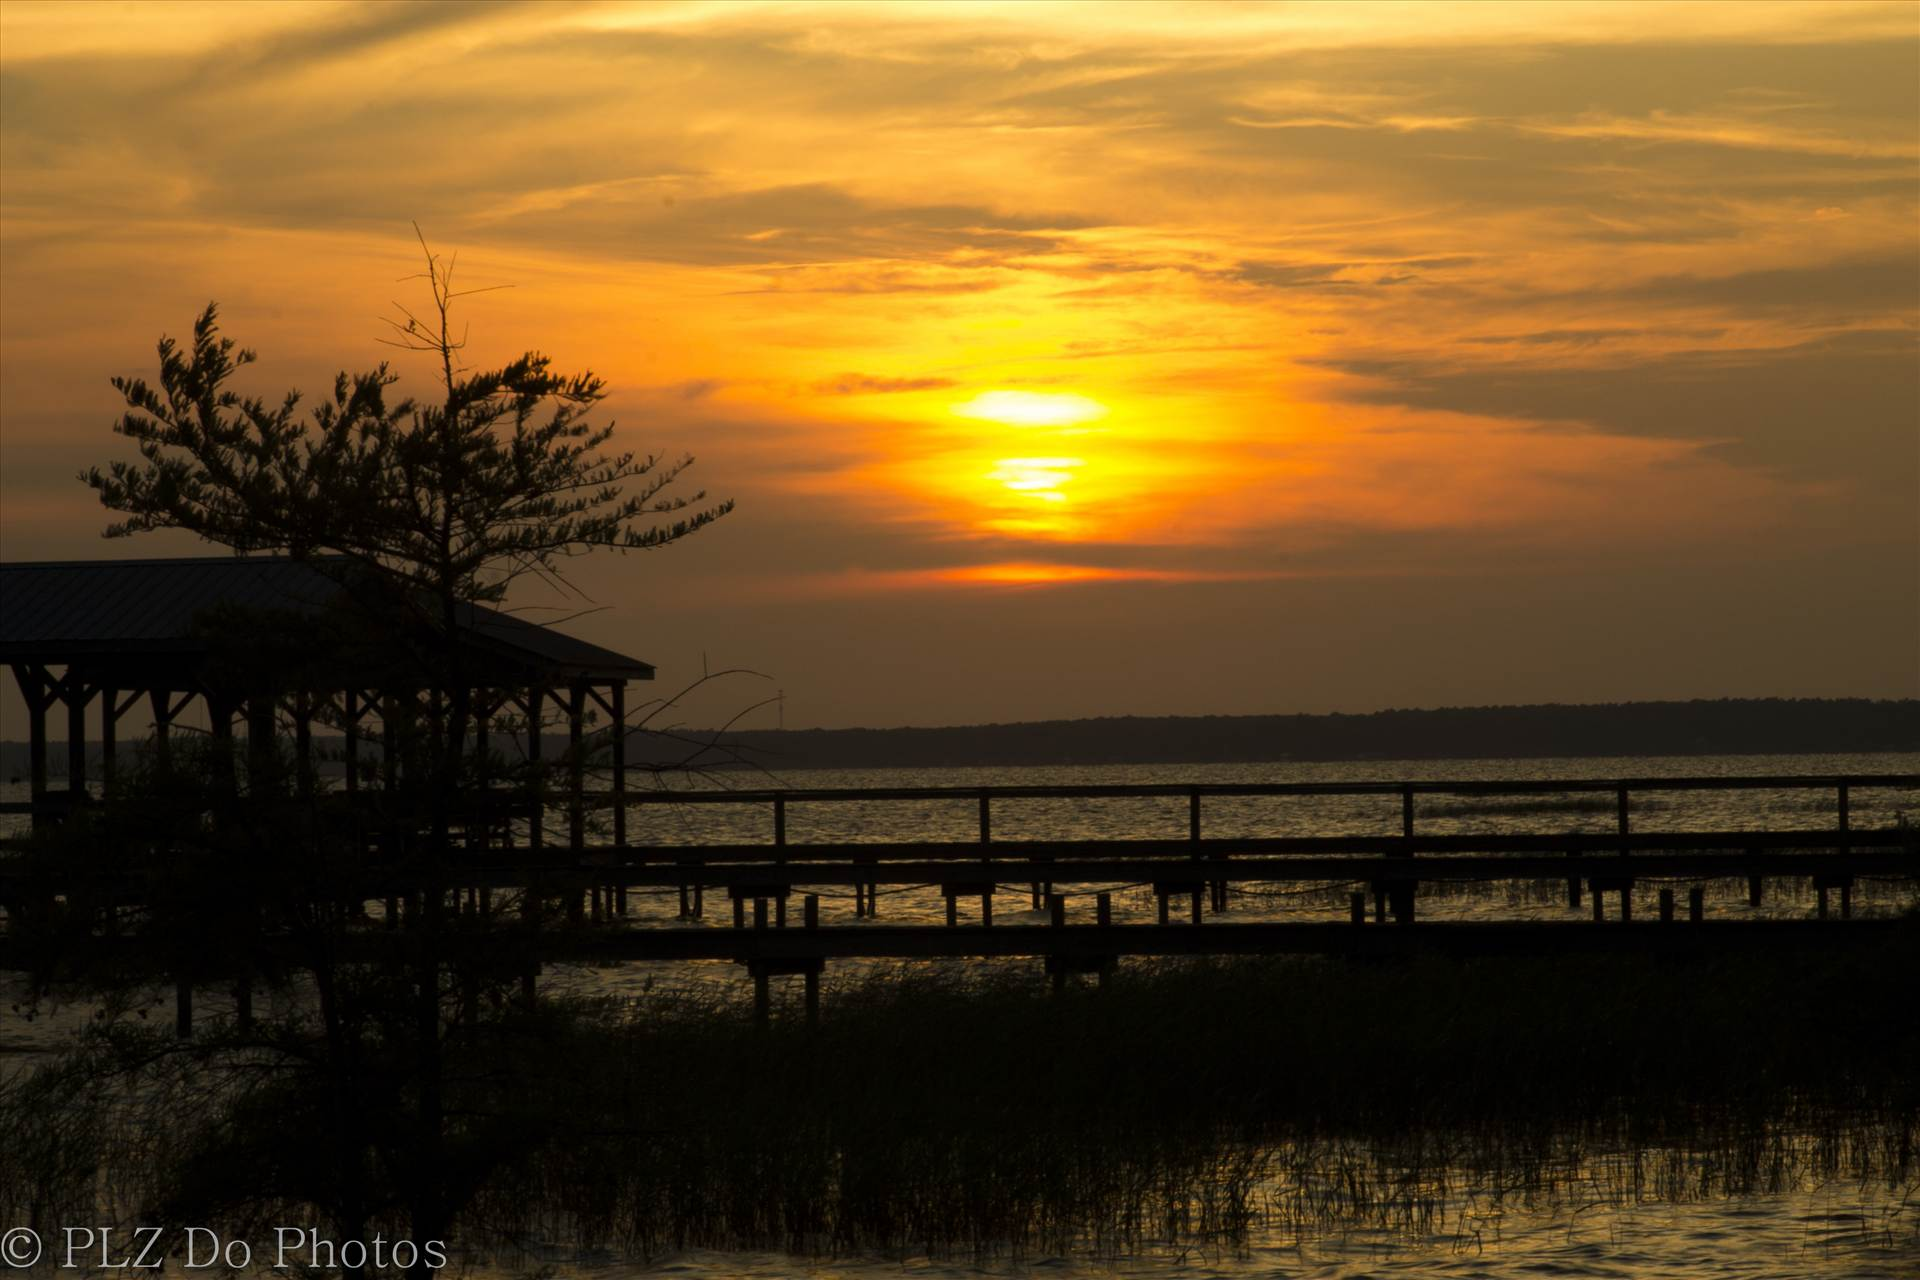 GOLDEN LAKE WACCAMAW - The golden hour - sunset at Lake Waccamaw, NC by Patricia Zyzyk